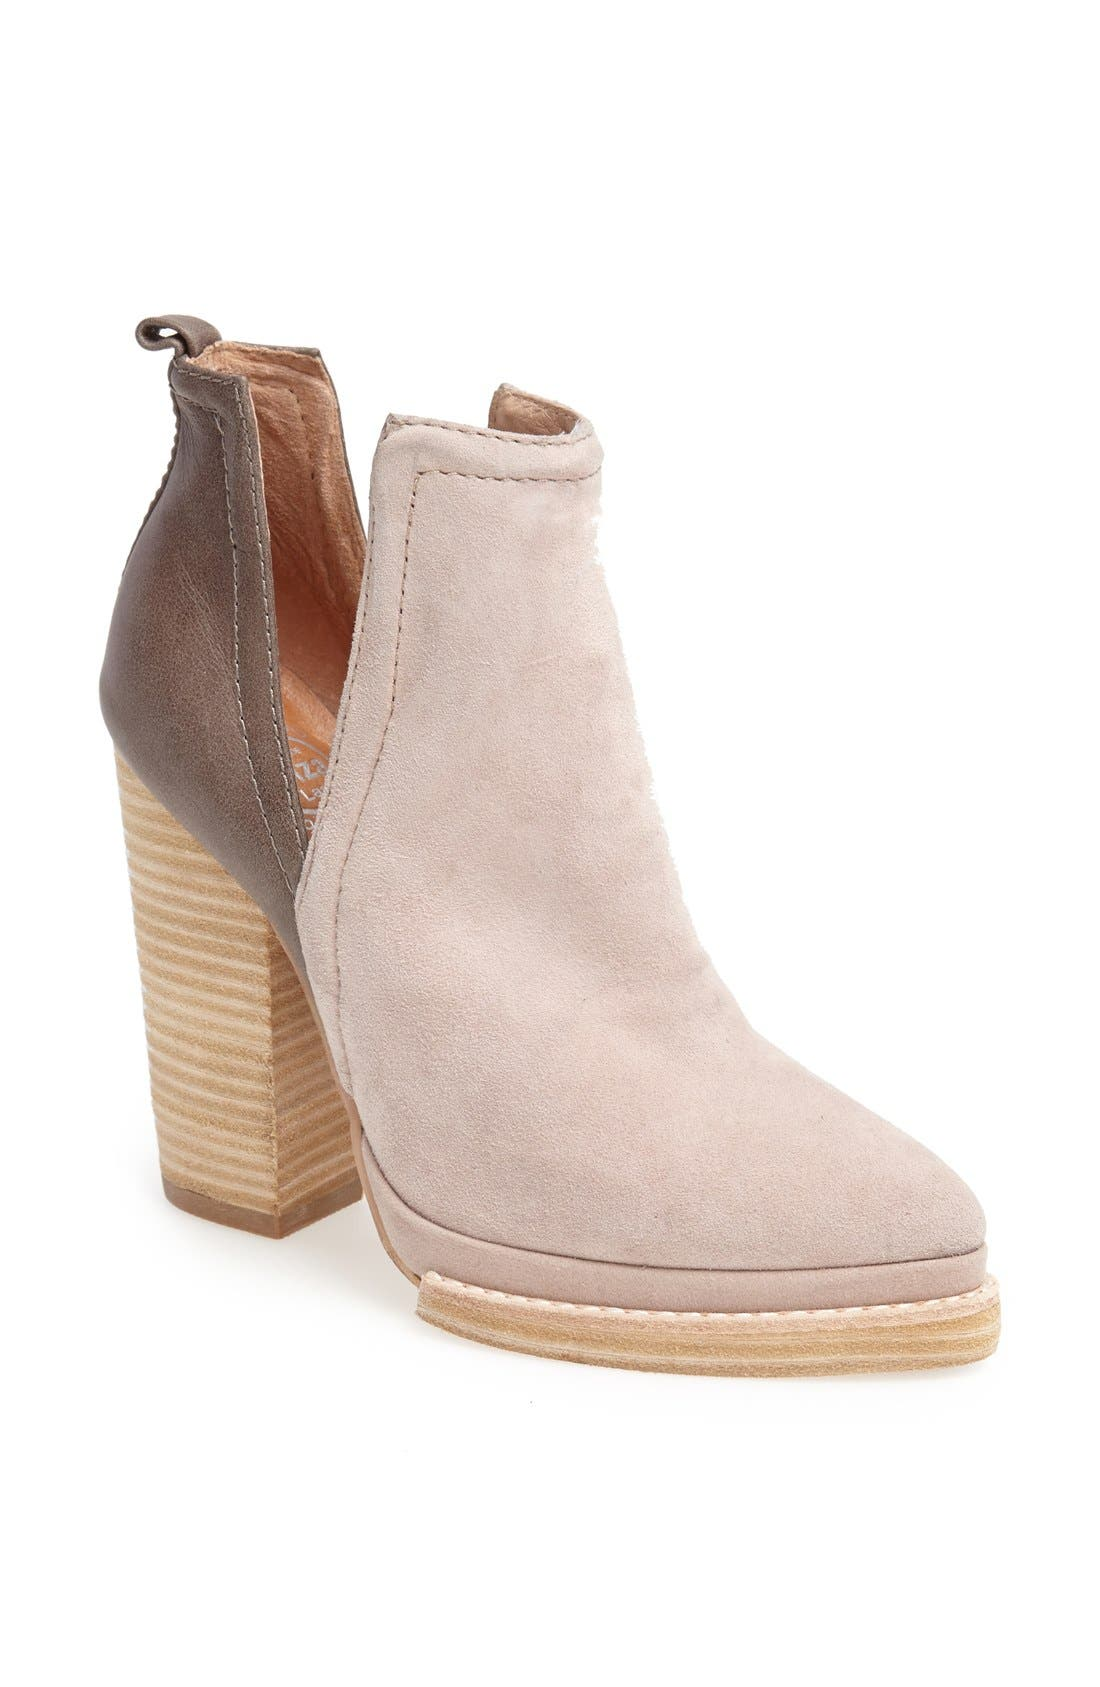 Main Image - Jeffrey Campbell 'Who's Next' Leather Bootie